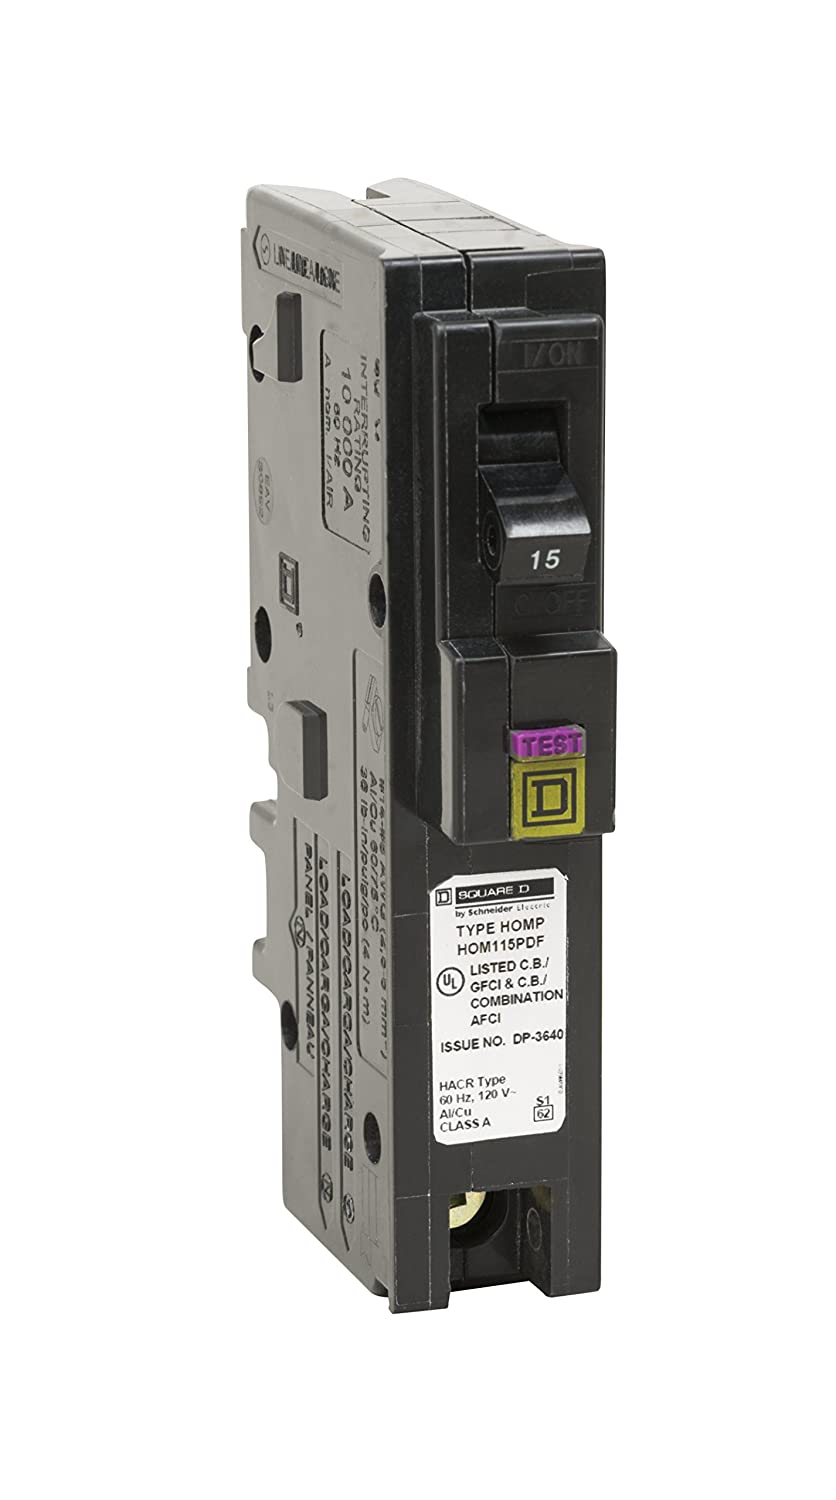 Square D By Schneider Electric Hom115pdfc Homeline Plug On Neutral Dual Fuse Box 15 Amp Single Pole Function Cafci And Gfci Circuit Breaker